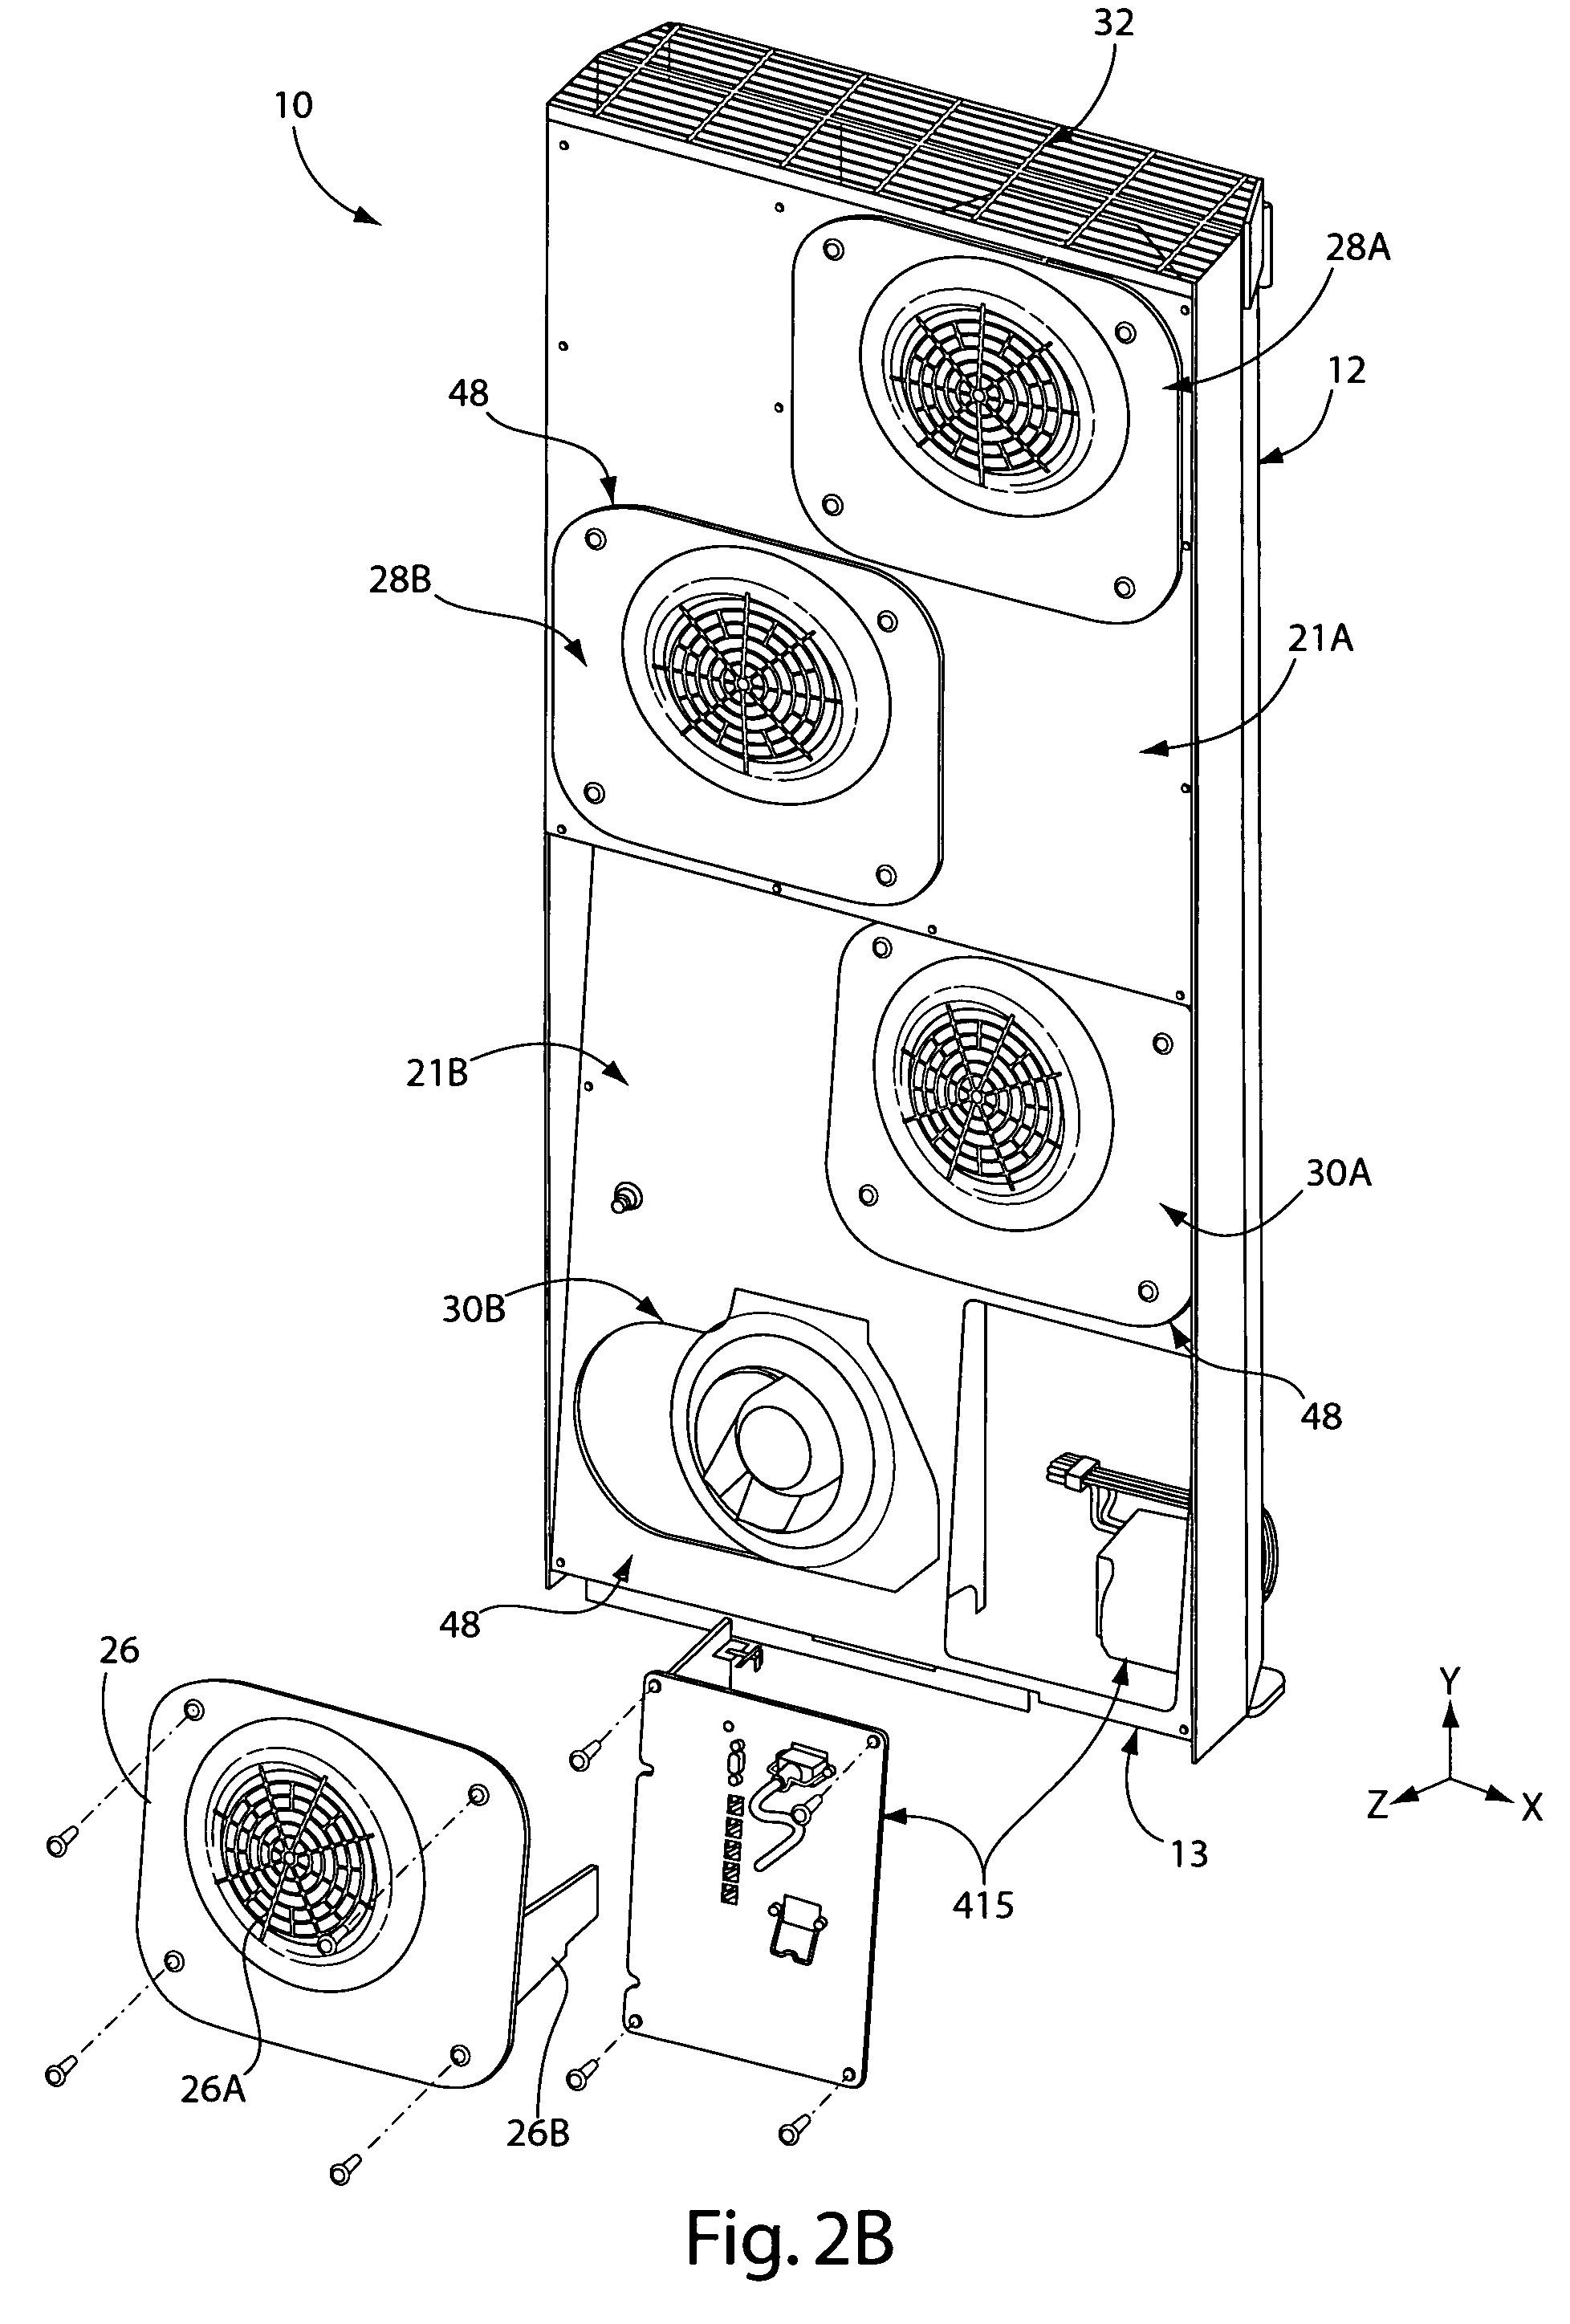 US7862410 besides US8210914 moreover US8210914 also US7120021 additionally US7862410. on data rack cooling fans